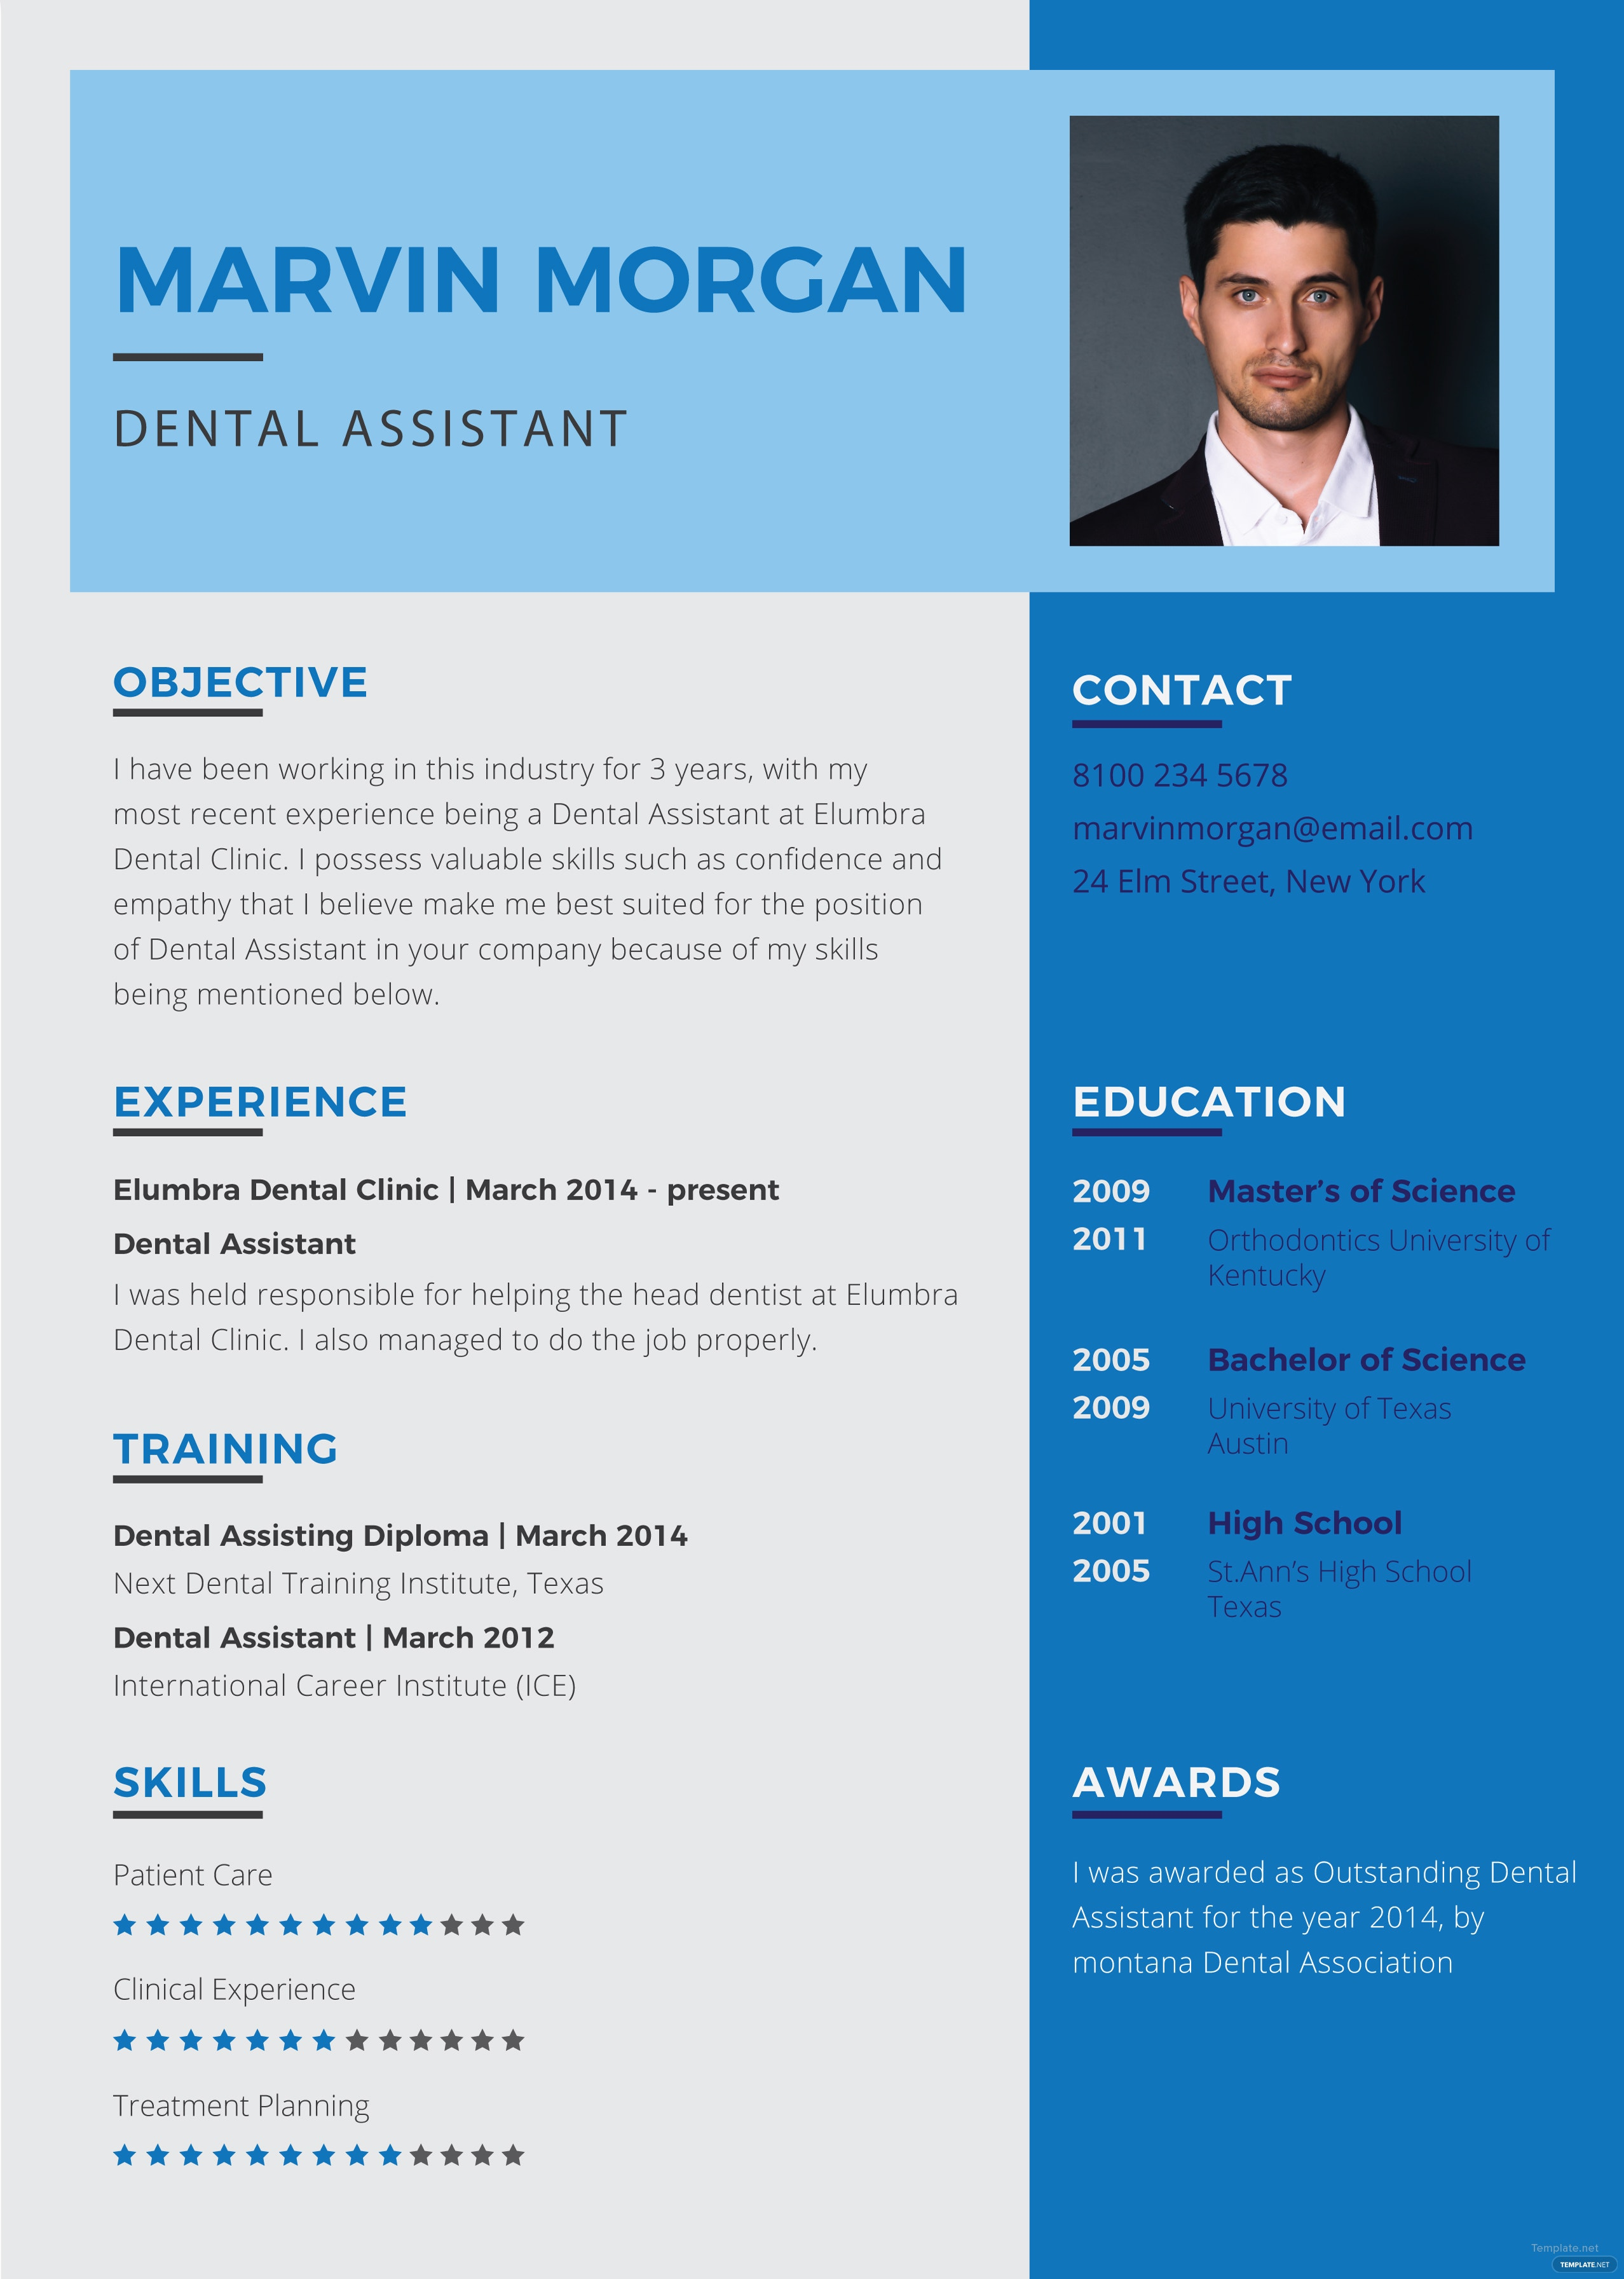 free dental assistant resume template in adobe photoshop